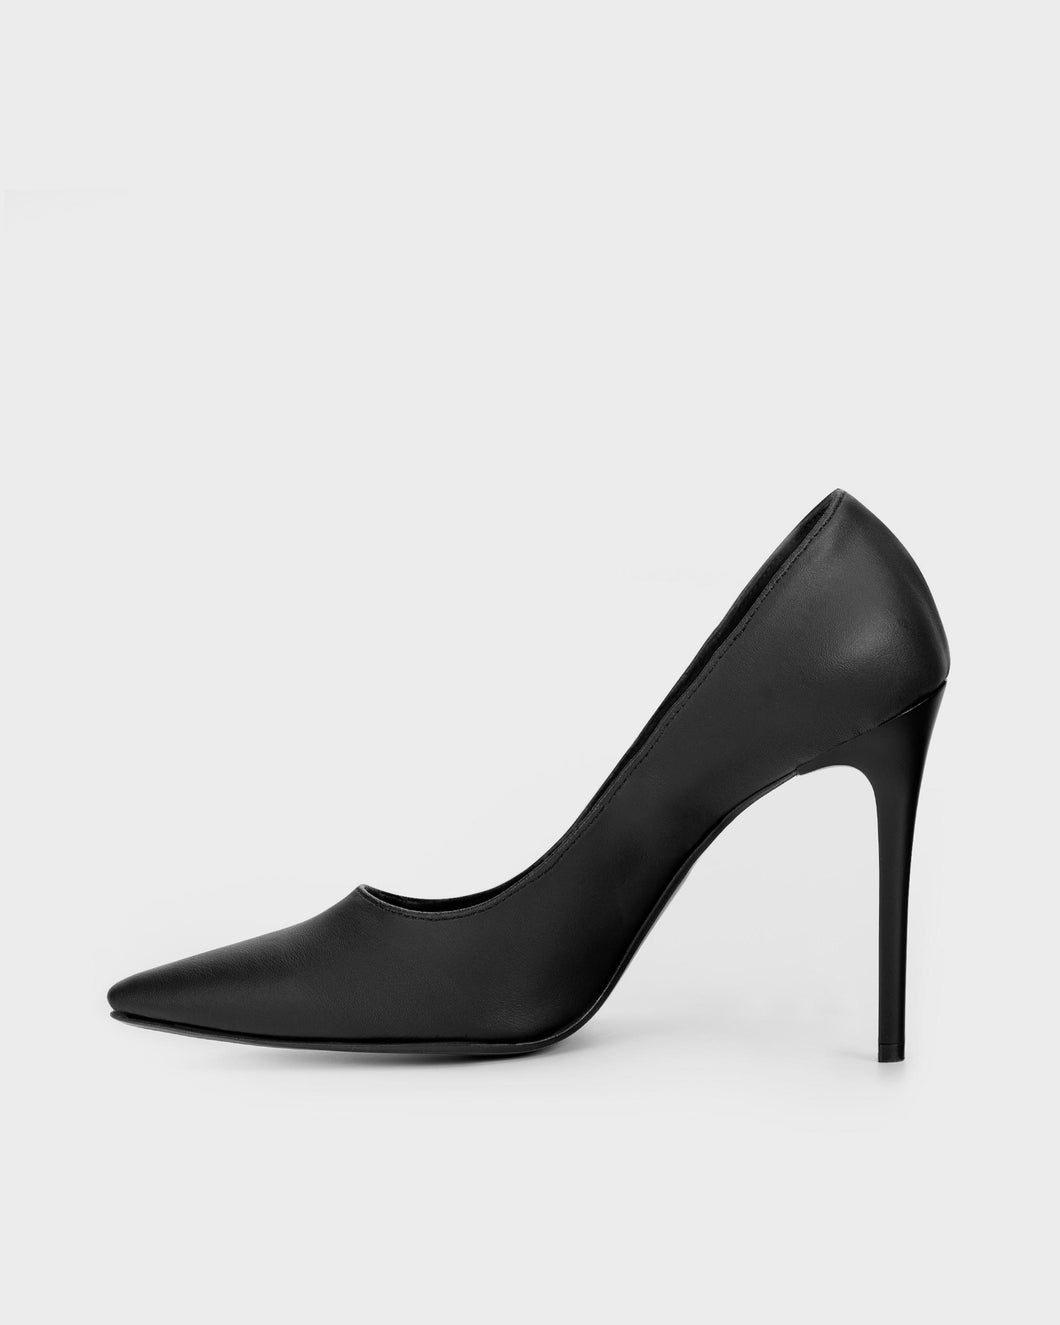 Blacky Chic Nopal cactus leather stilettos